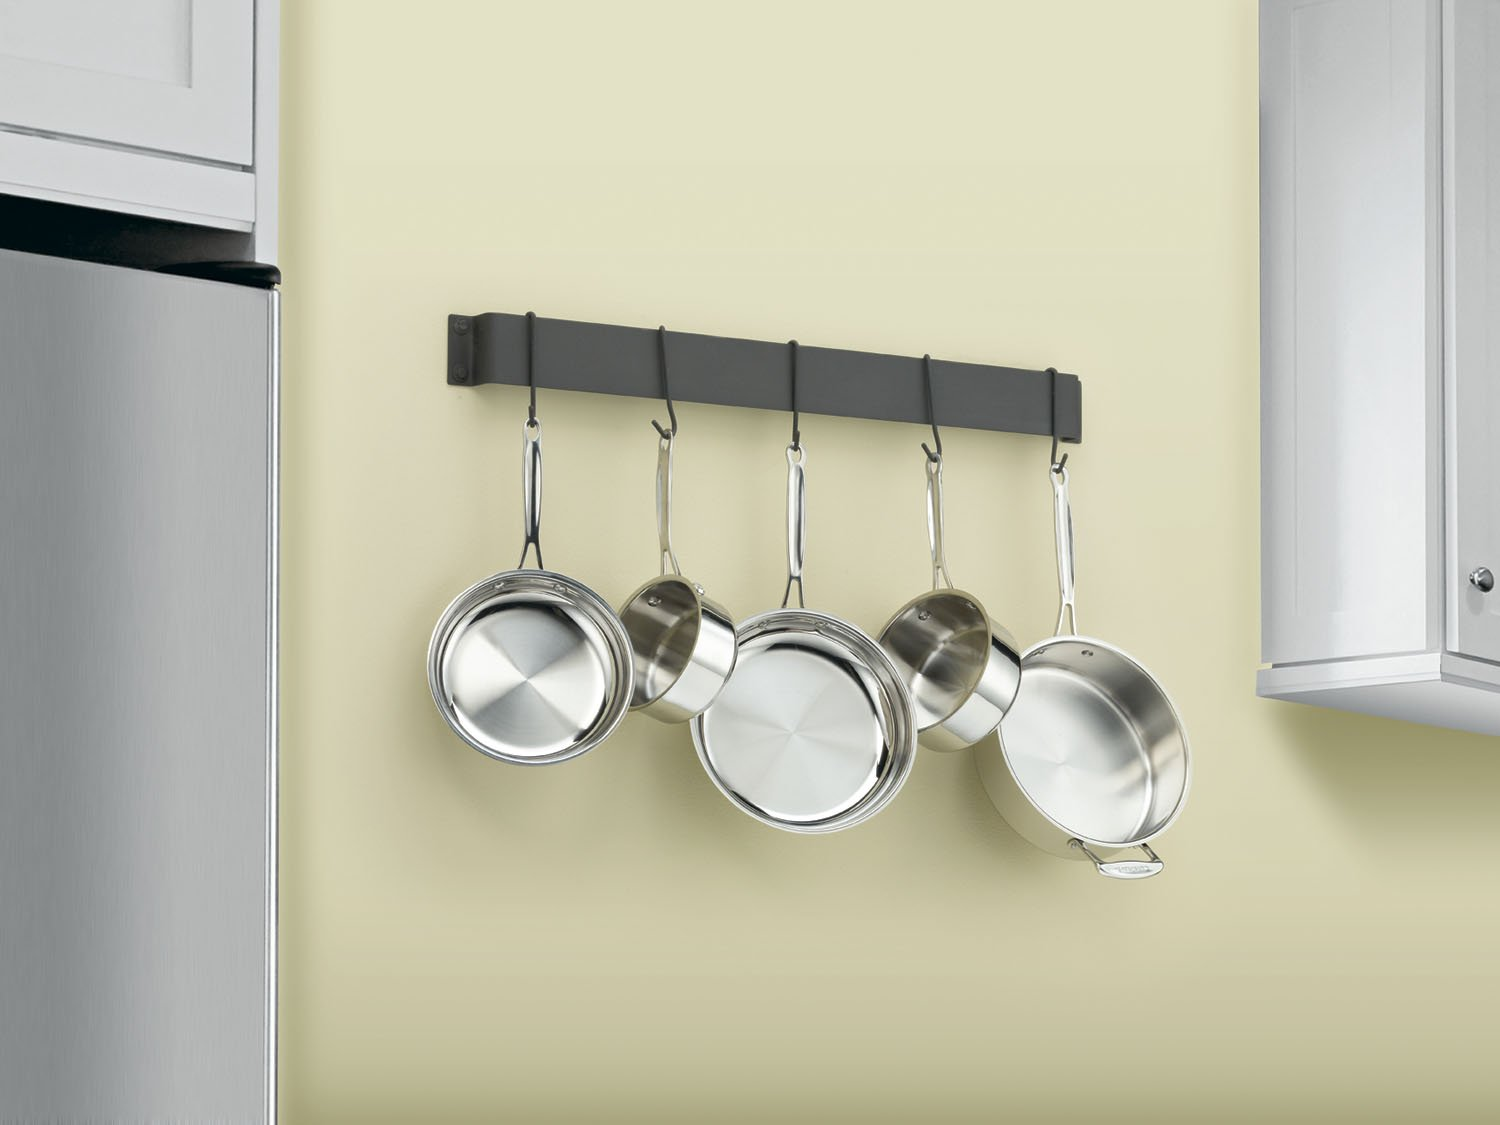 Cuisinart CRBW-33MBK Chef's Classic 33-Inch Bar-Style Wall-Mount Pot Rack, Matte Black by Cuisinart (Image #2)